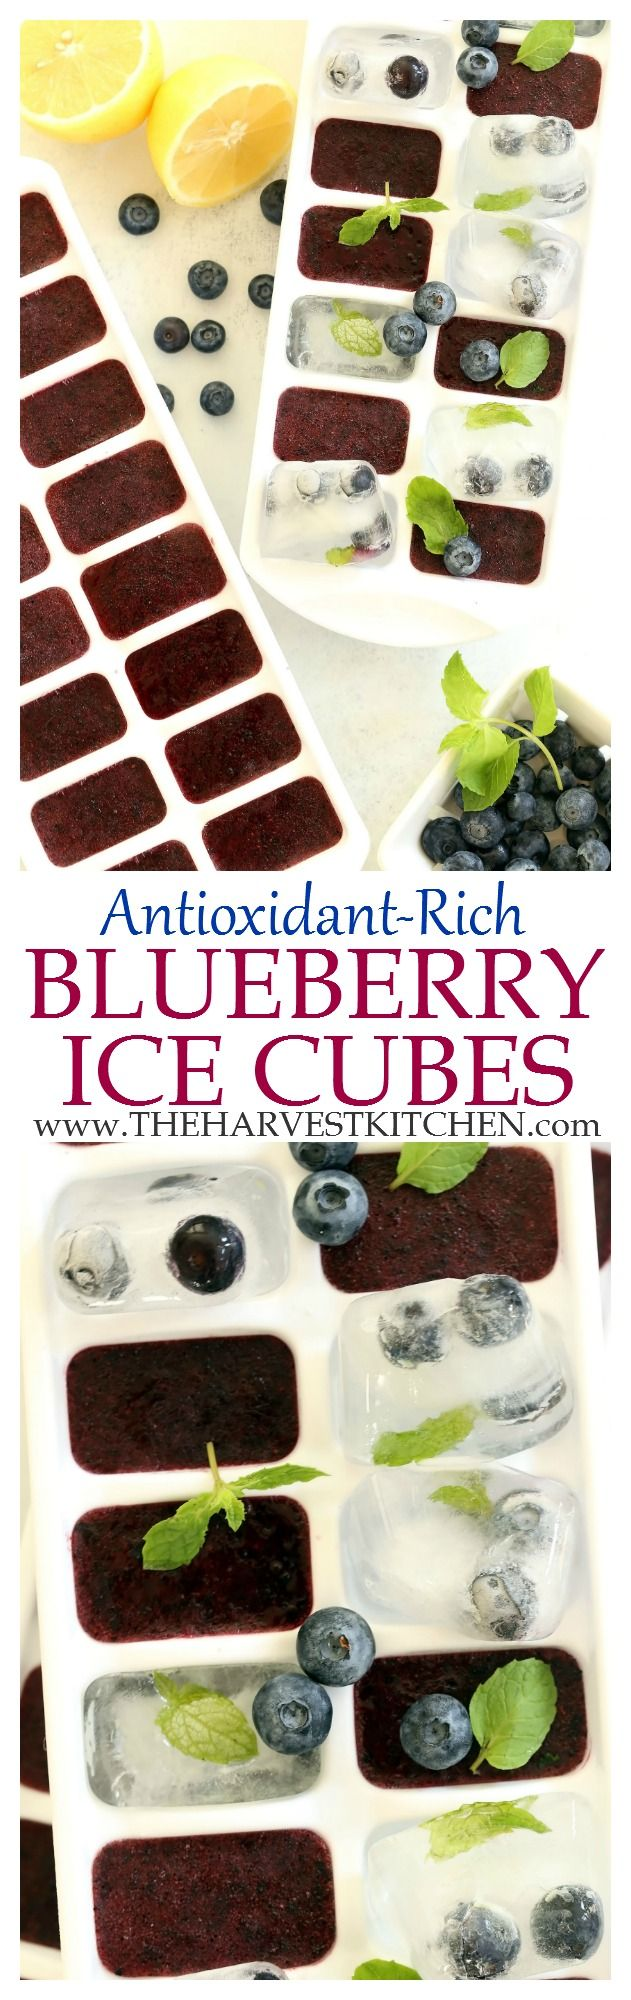 These Immune Boosting Blueberry Ice Cubes add a pop of color,  flavor, and immune boosting benefits to lemonade, iced tea and plain old water. | detox drink recipes | | detox recipes | | fruit flavored ice cubes | | clean eating | | healthy eating |